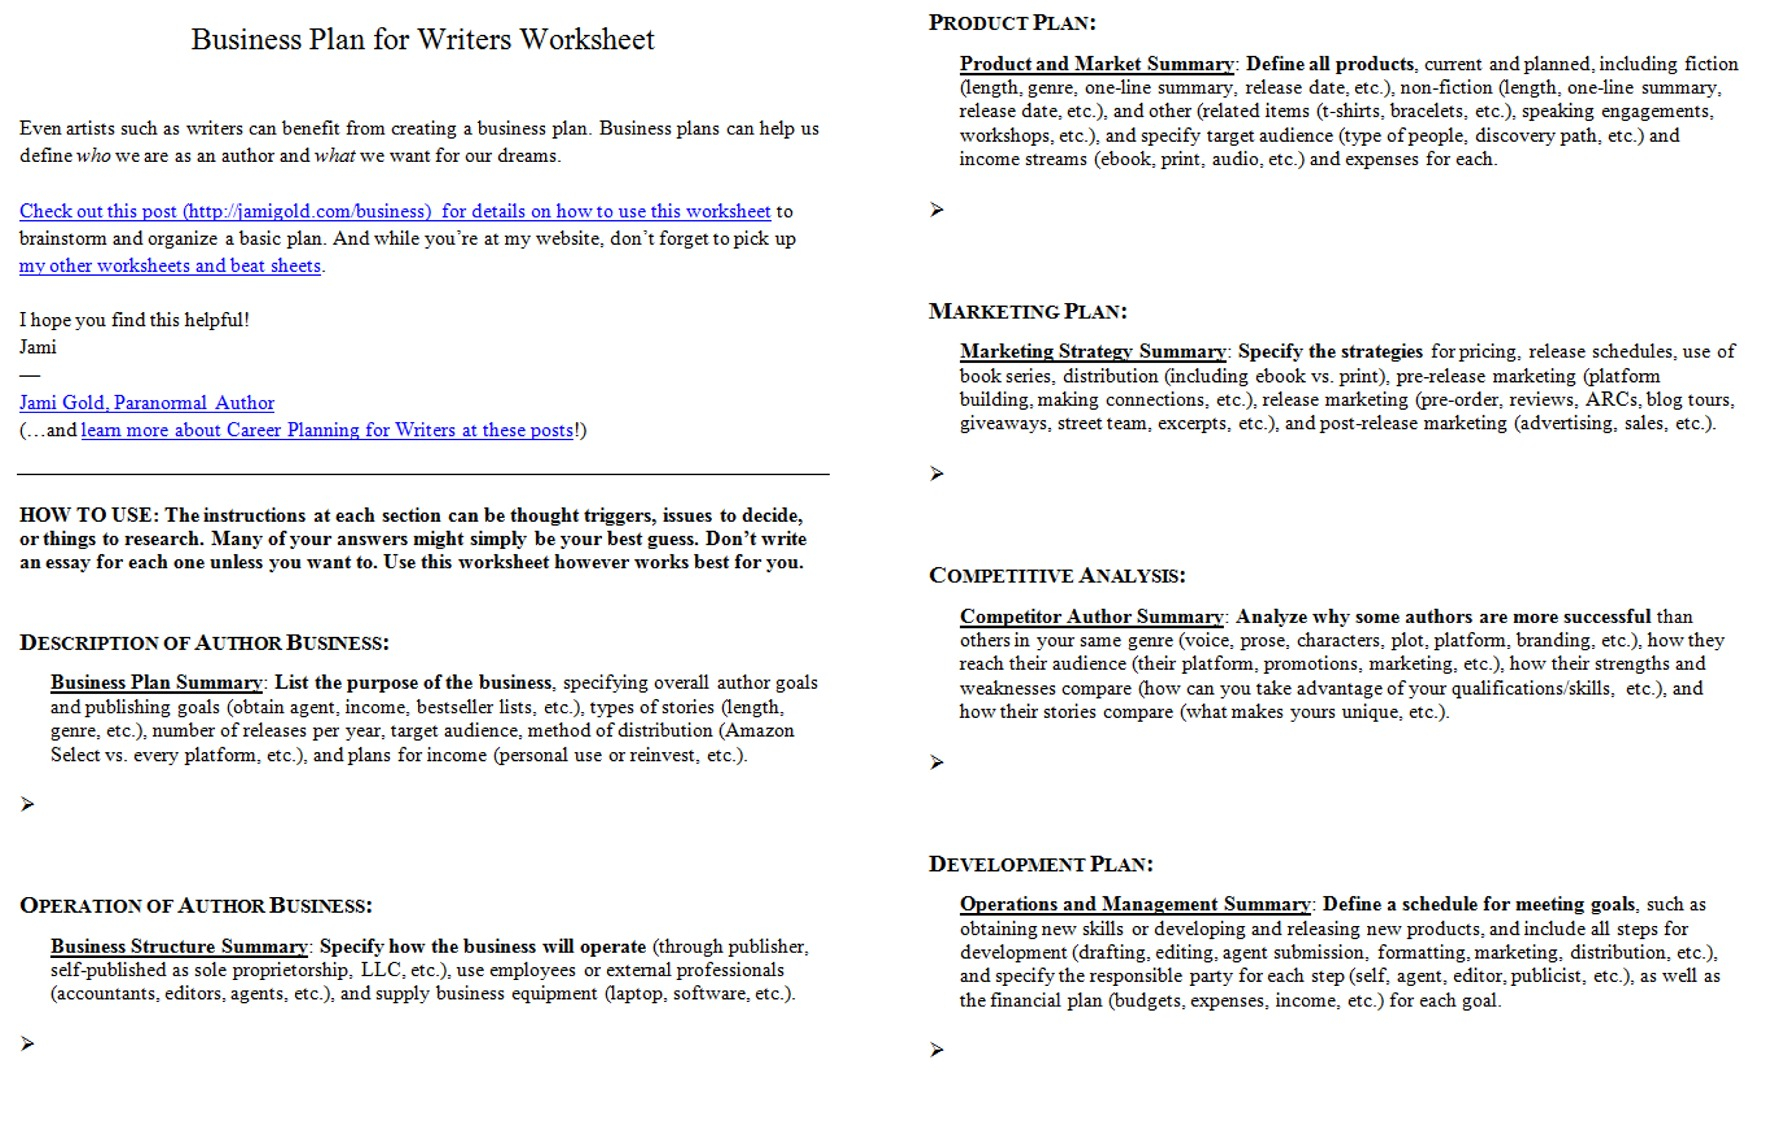 Aldiablosus  Outstanding Worksheets For Writers  Jami Gold Paranormal Author With Licious Screen Shot Of Both Pages Of The Business Plan For Writers Worksheet With Extraordinary Preschool Math Worksheets Counting Also Alexander Graham Bell Worksheet In Addition Rounding Hundreds Worksheet And Compound Words Worksheets For Th Grade As Well As Worksheets On Multiple Meaning Words Additionally Free Printable Distributive Property Worksheets From Jamigoldcom With Aldiablosus  Licious Worksheets For Writers  Jami Gold Paranormal Author With Extraordinary Screen Shot Of Both Pages Of The Business Plan For Writers Worksheet And Outstanding Preschool Math Worksheets Counting Also Alexander Graham Bell Worksheet In Addition Rounding Hundreds Worksheet From Jamigoldcom